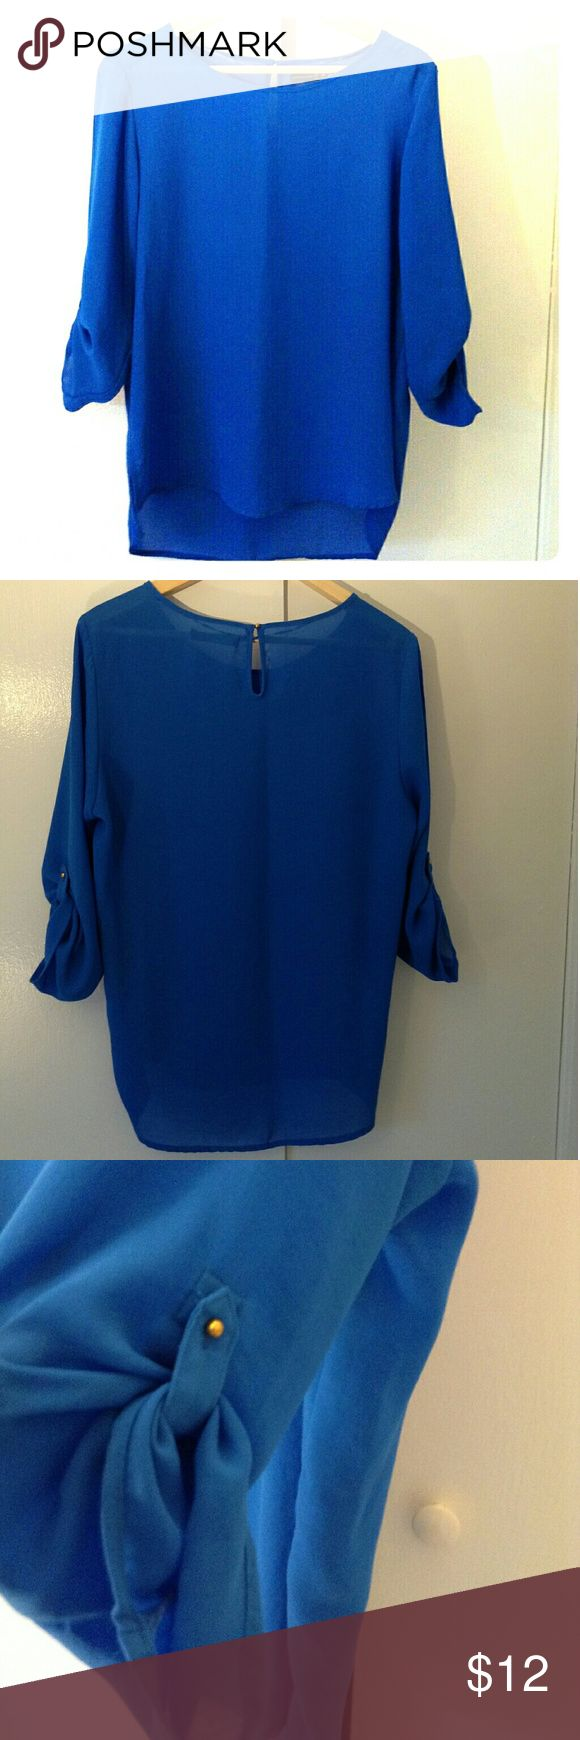 Blouse (new) Beautiful electric blue flowing blouse, 100% polyester Primark Tops Blouses